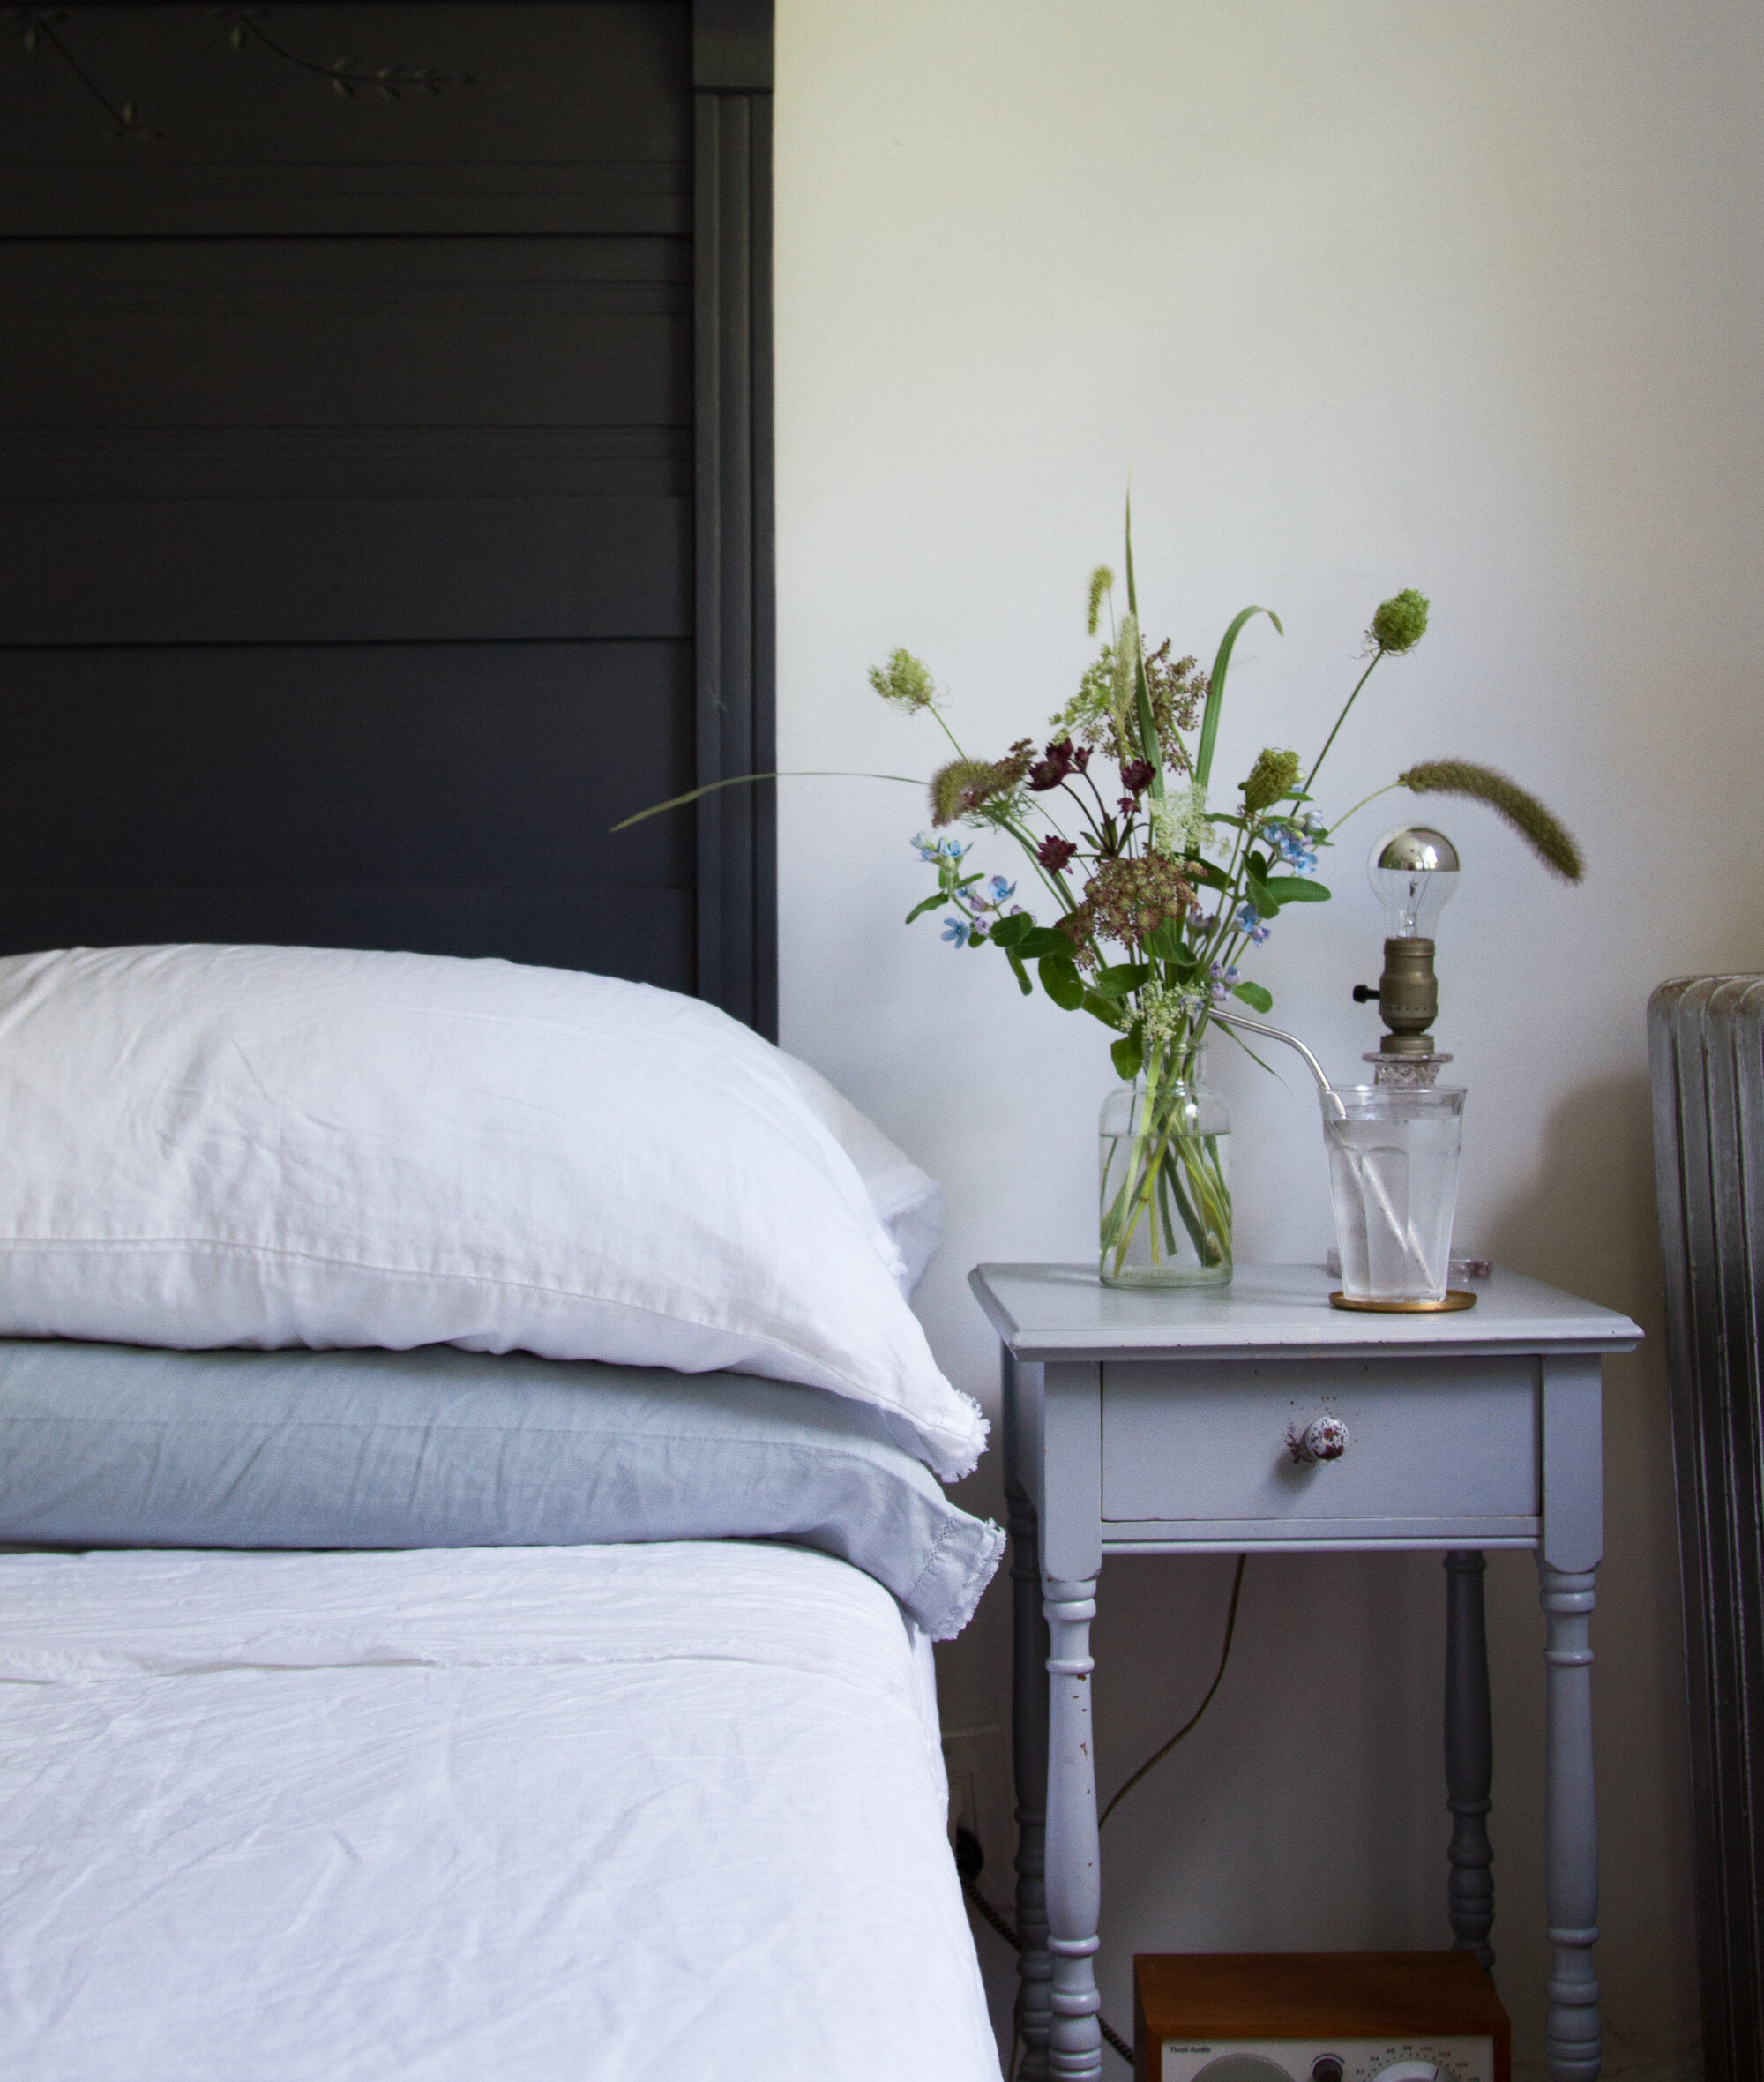 linen bed sheets from garnet hill's eileen fisher collection |reading my tea leaves